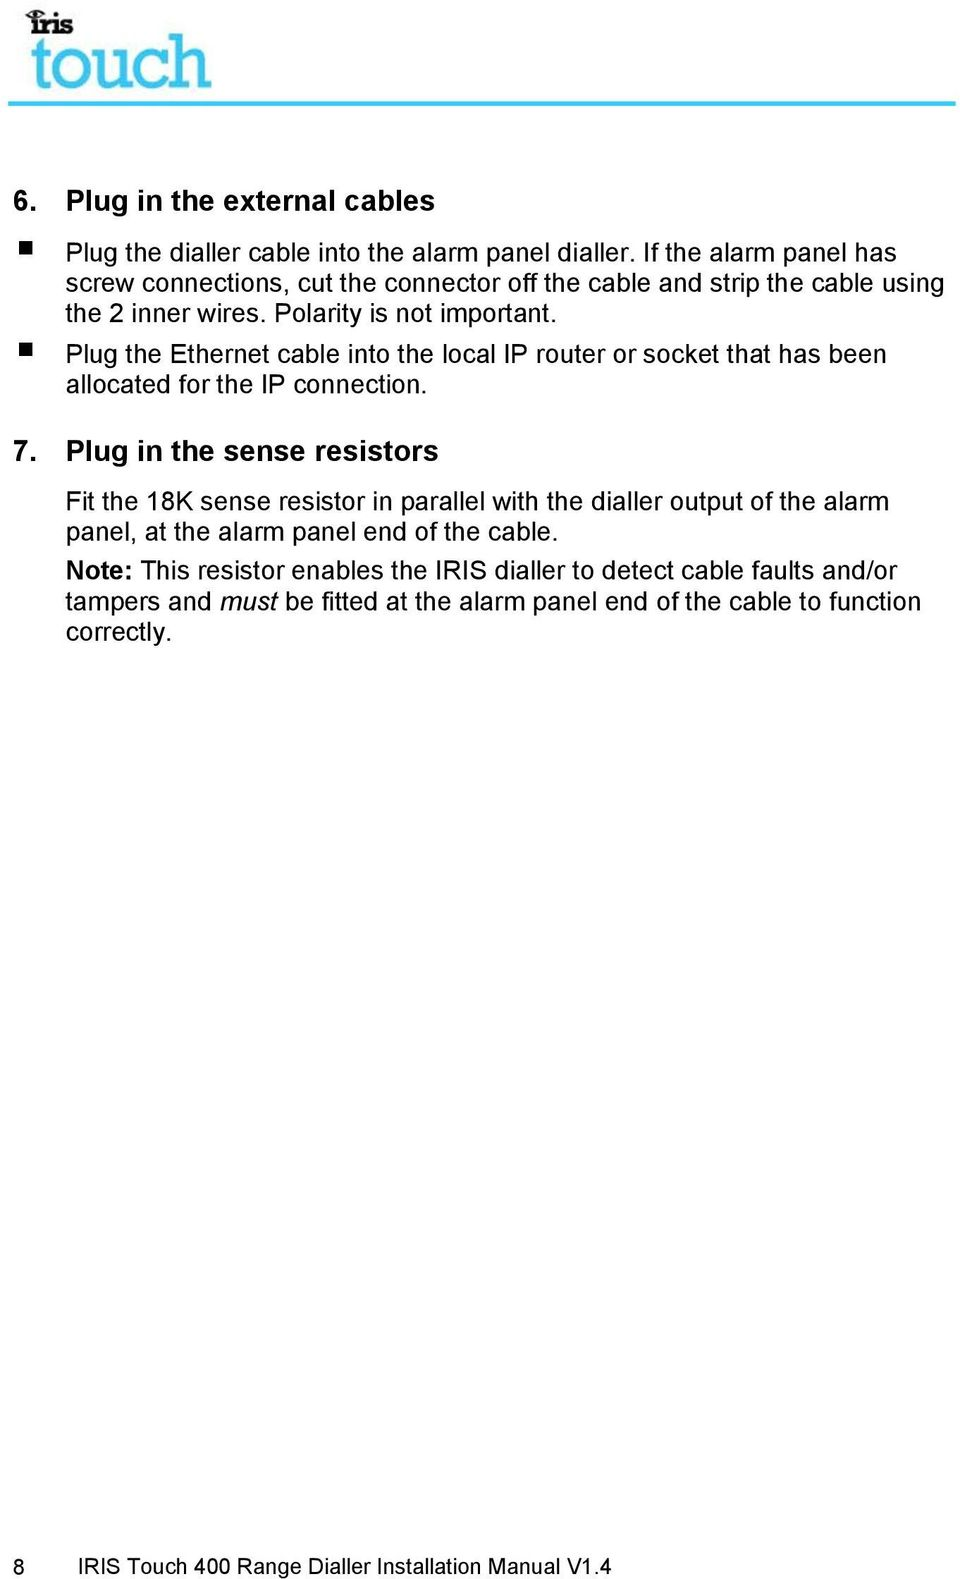 Iris Touch 400 Range Dialler Installation Manual Version Pdf Thermostat Wiring Diagram Plug The Ethernet Cable Into Local Ip Router Or Socket That Has Been Allocated For